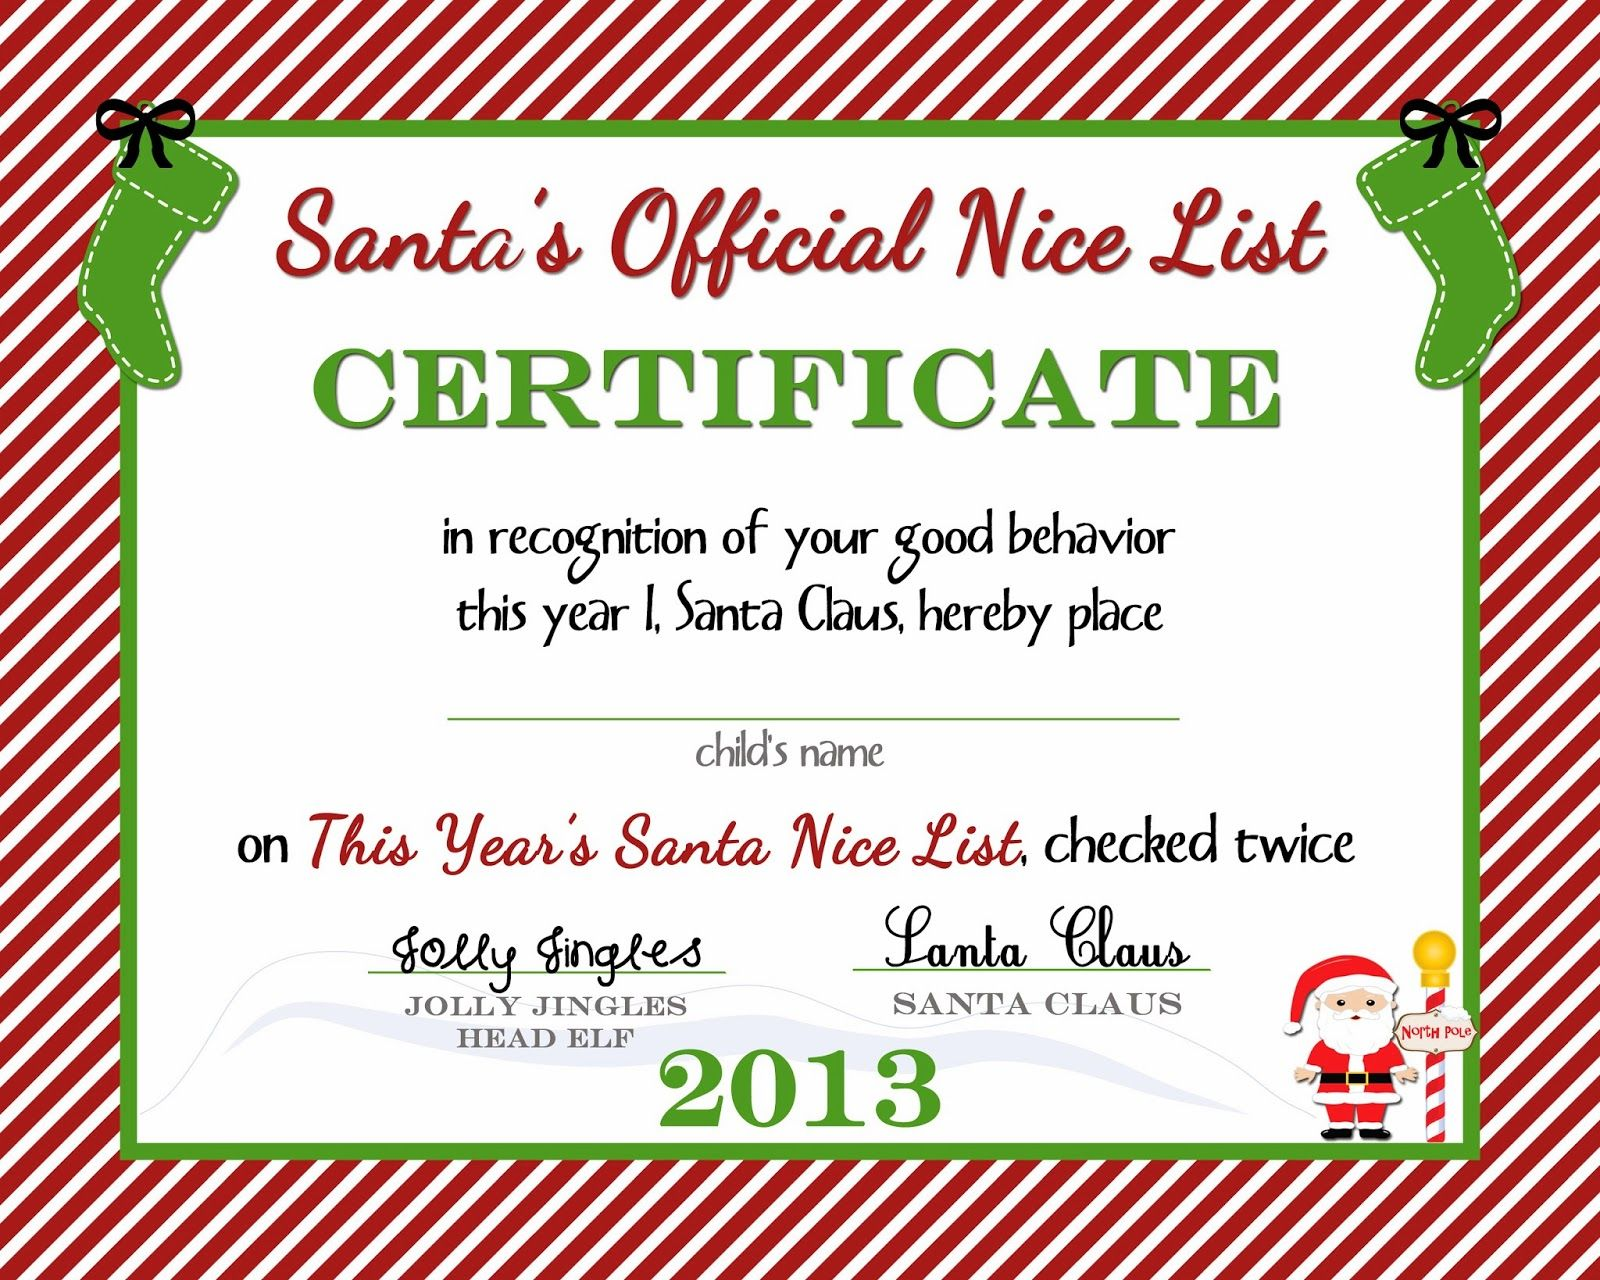 Wonderful {Free Printable) Nice List Certificate From The North Pole For Christmas Certificates Templates Free